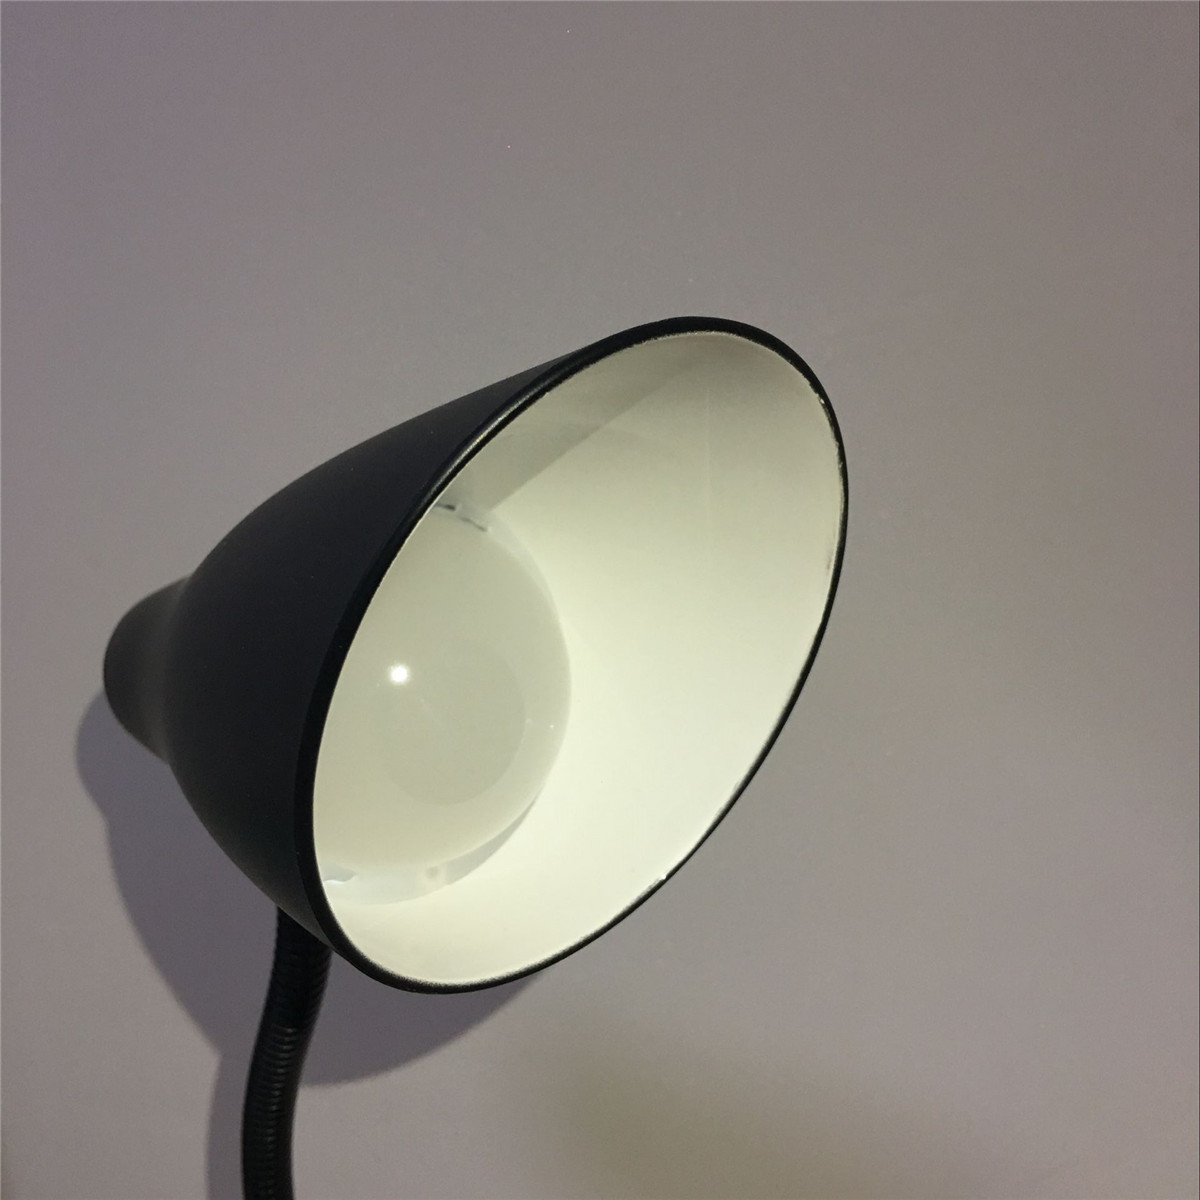 Dc5v 6w multi function led smart touch dimming table lamp usb a single click on the induction area the brightness followed by ring point hand immediately open packing list 1 x glisteny desk lamp aloadofball Gallery